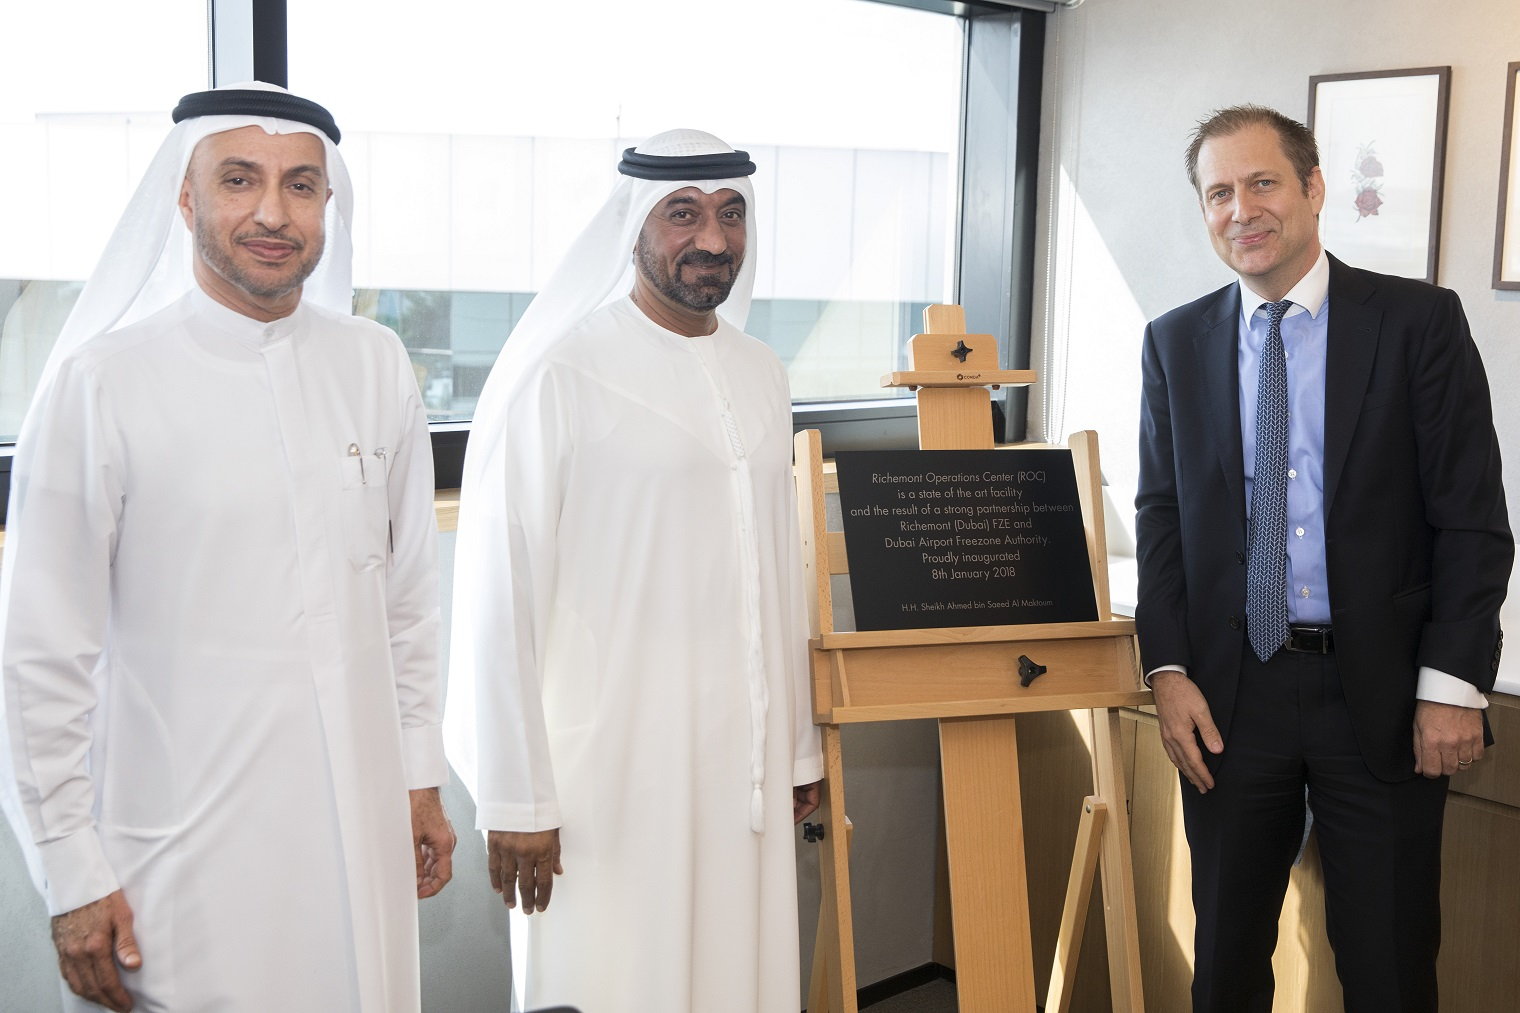 DAFZA launches state-of-the-art Richemont facility